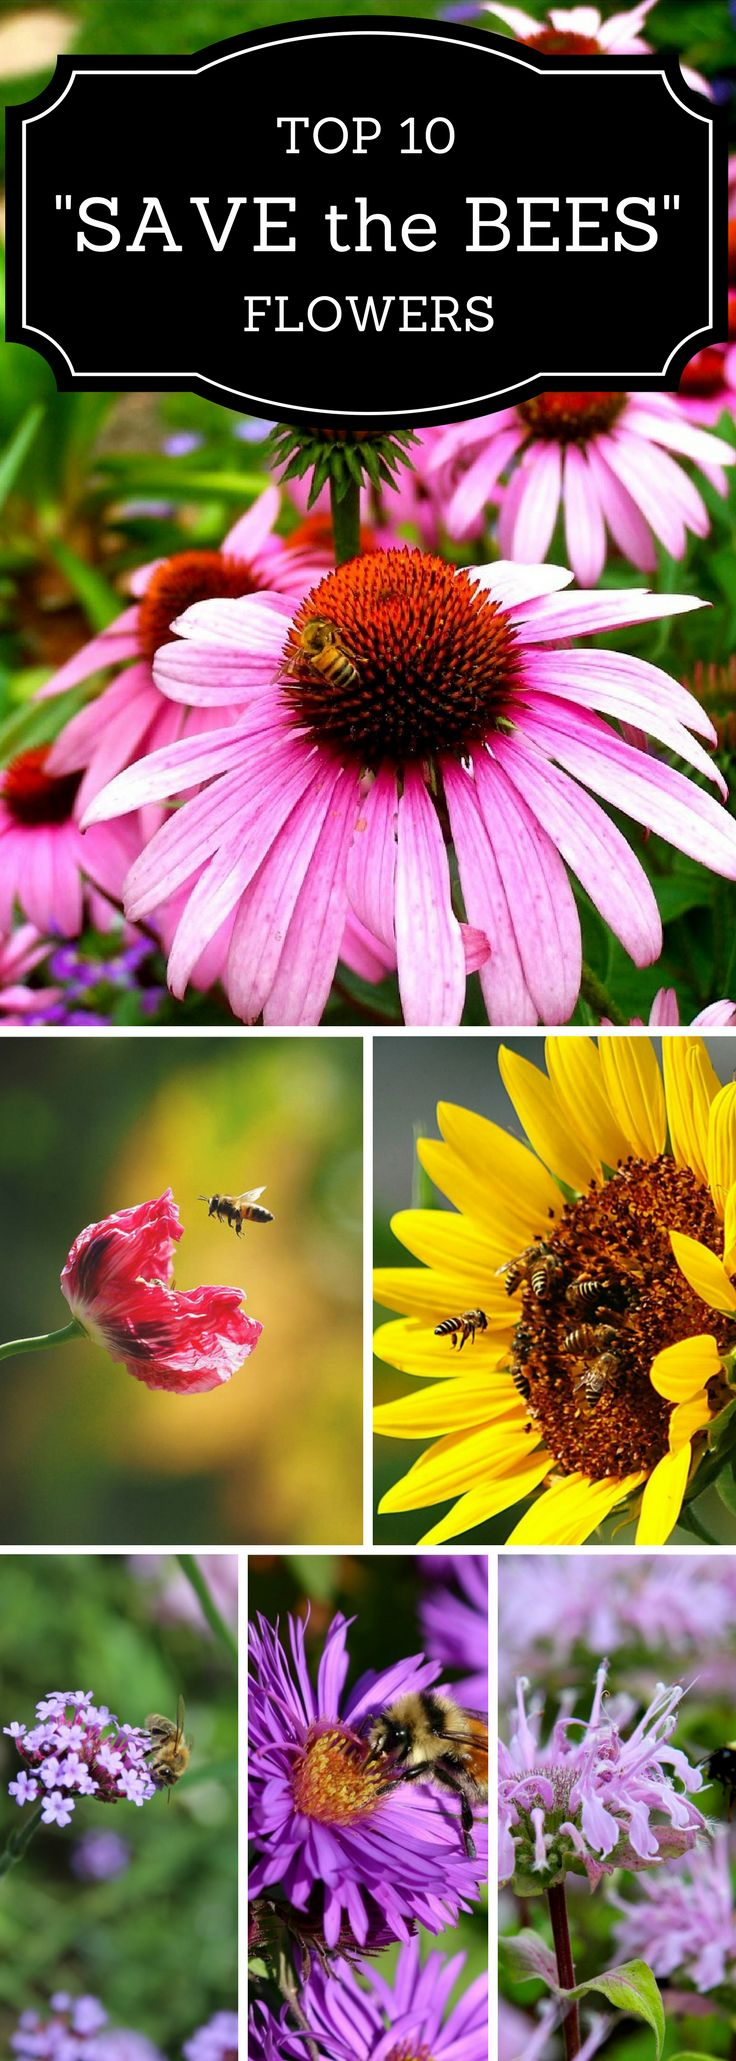 "Top 10 ""Save the Bees"" Flowers"